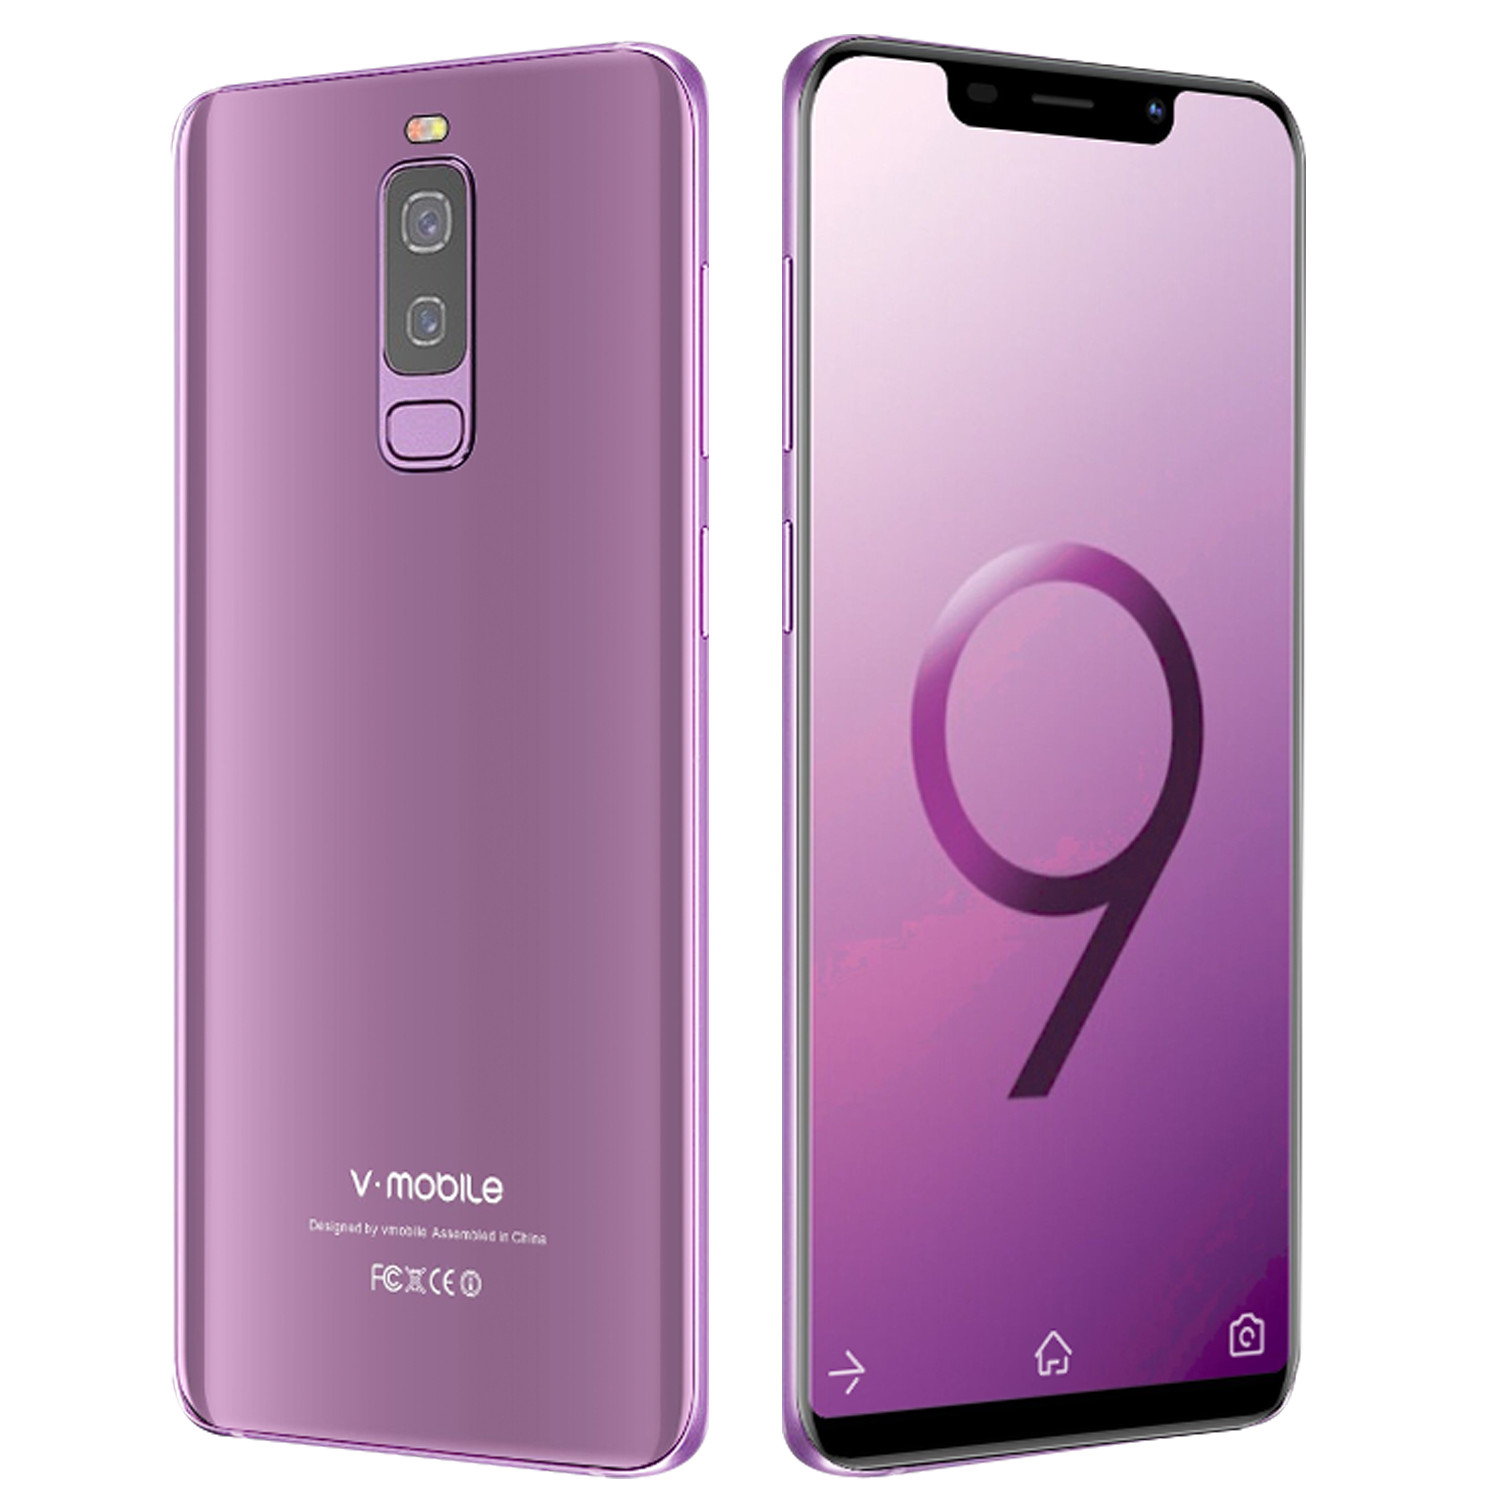 "TEENO VMobile S9 unlocked Cell Phone Android 7.0 5.84"" Full Screen 19:9 2GB RAM 16GB ROM Dual Sim Quad Core celular Smartphone"